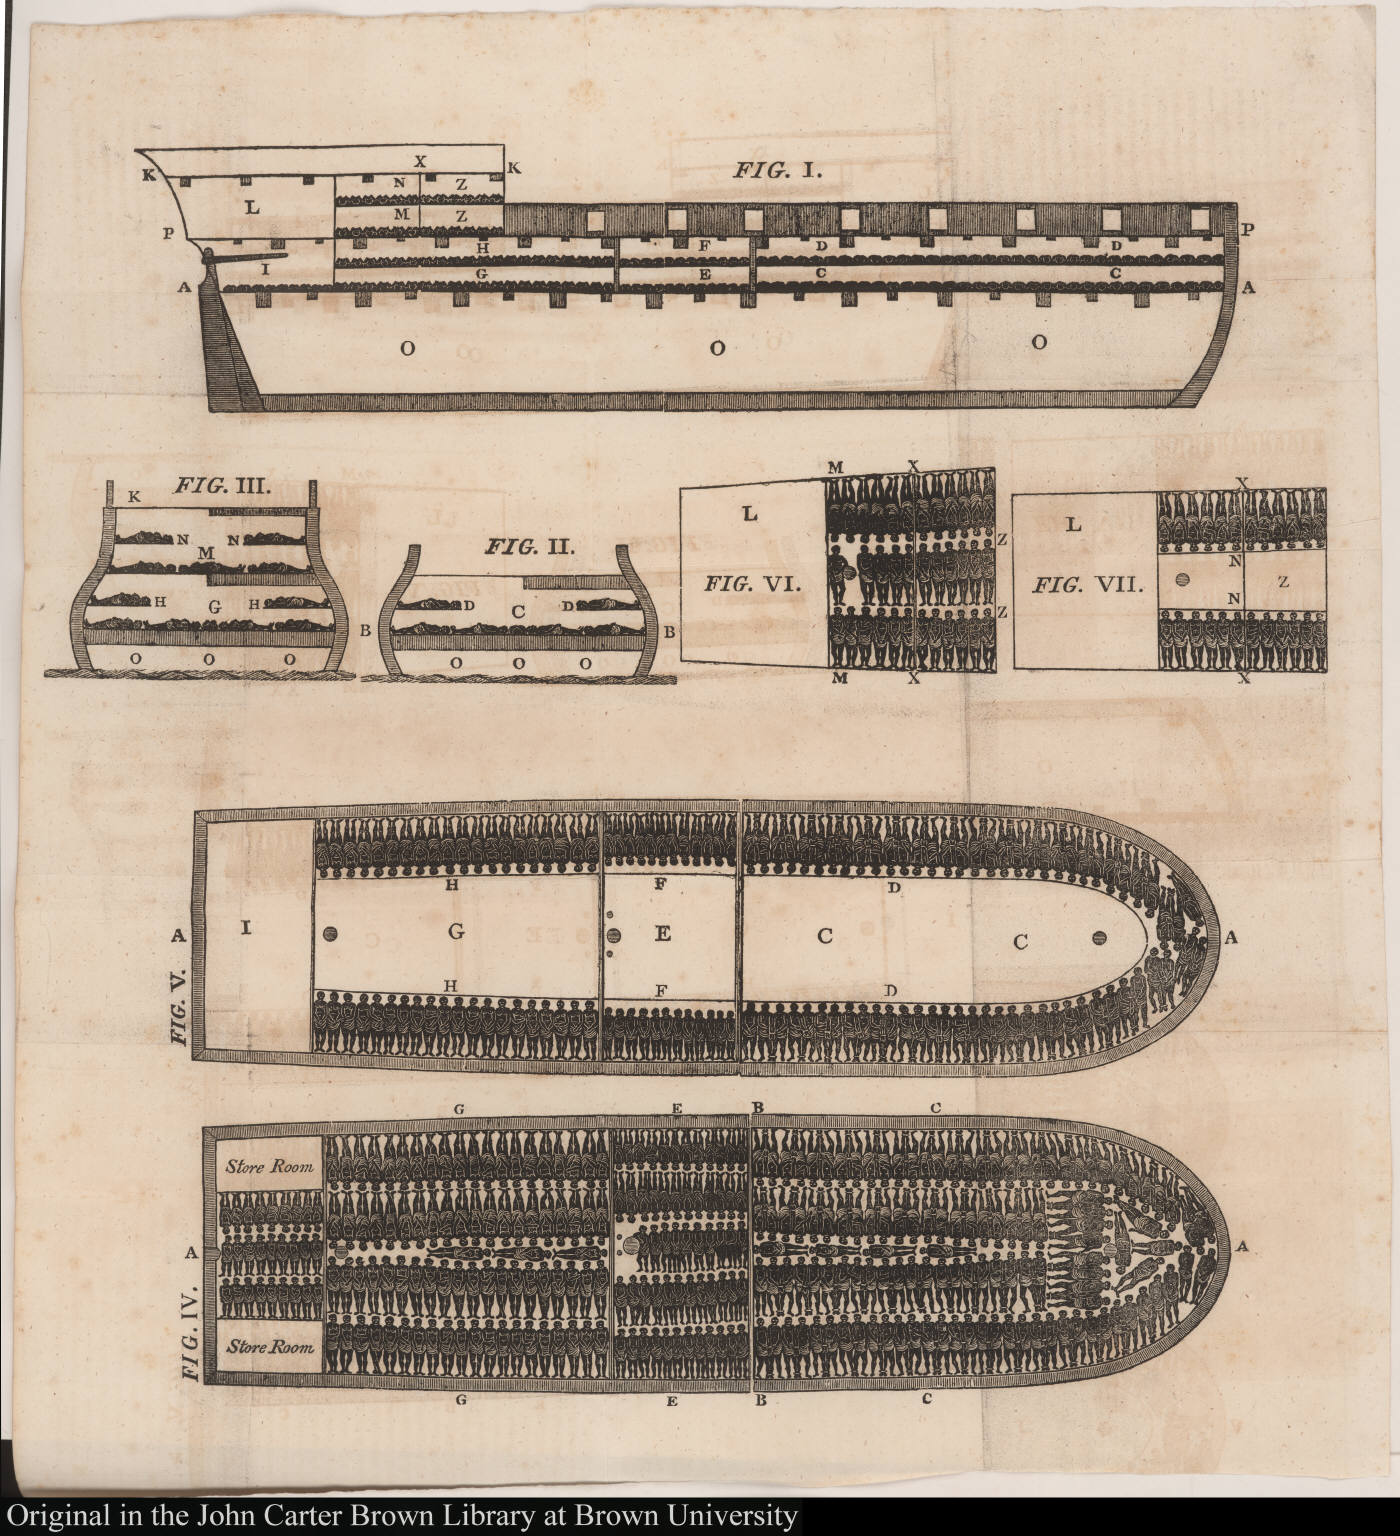 Diagram of a slave ship jcb archive of early american images diagram of a slave ship pooptronica Images